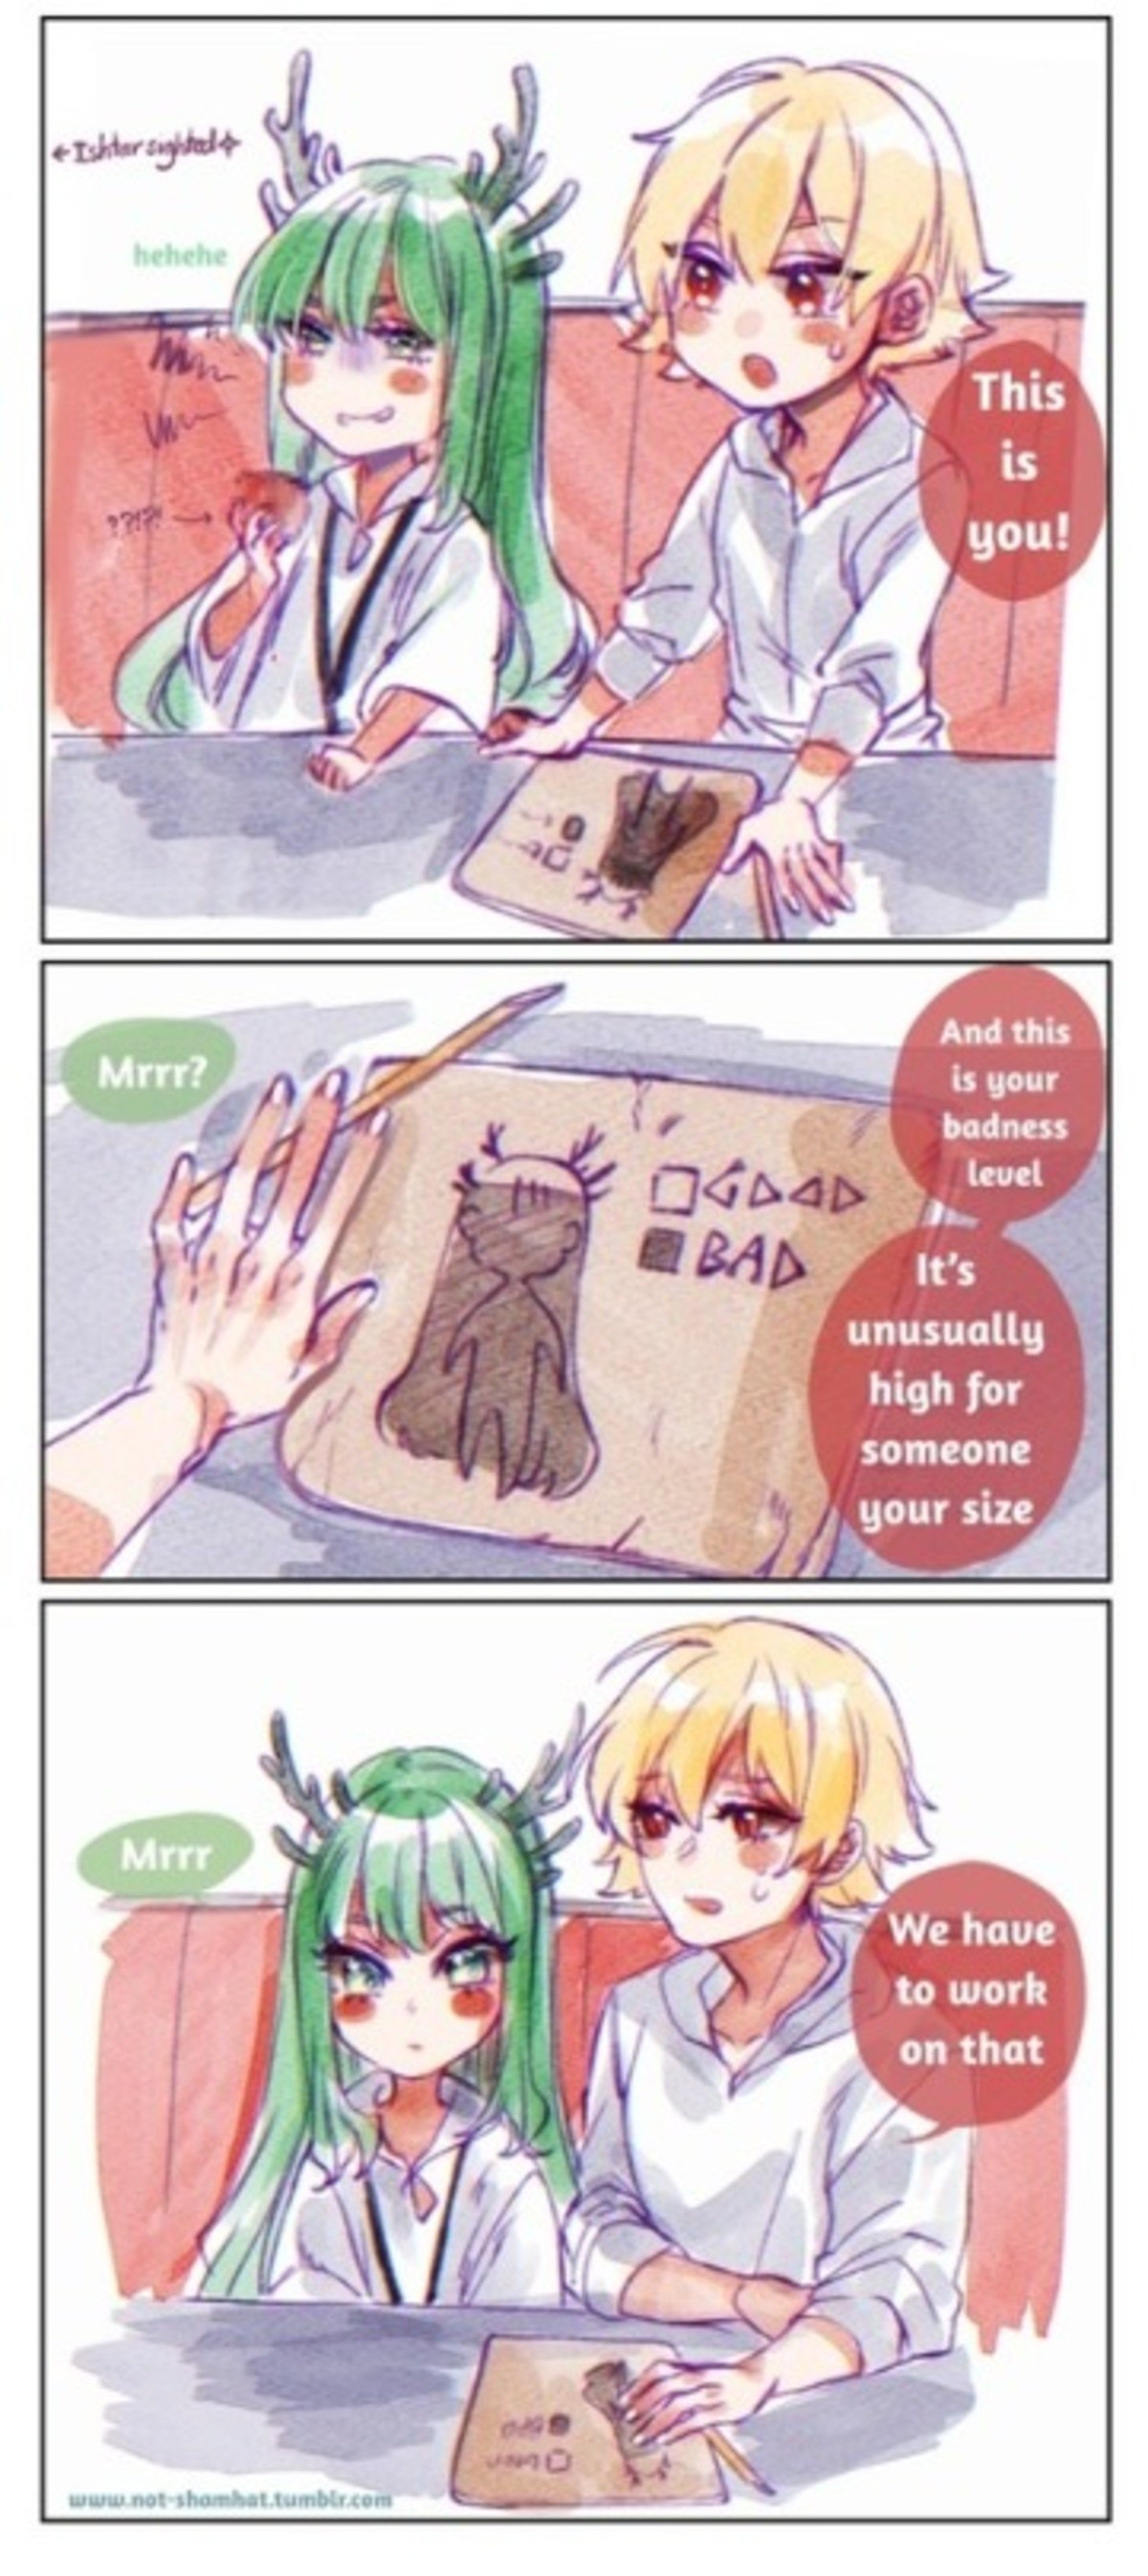 Bad rock. .. I haven't watched the whole enkidu business but I'm pretty sure it should be the other way around